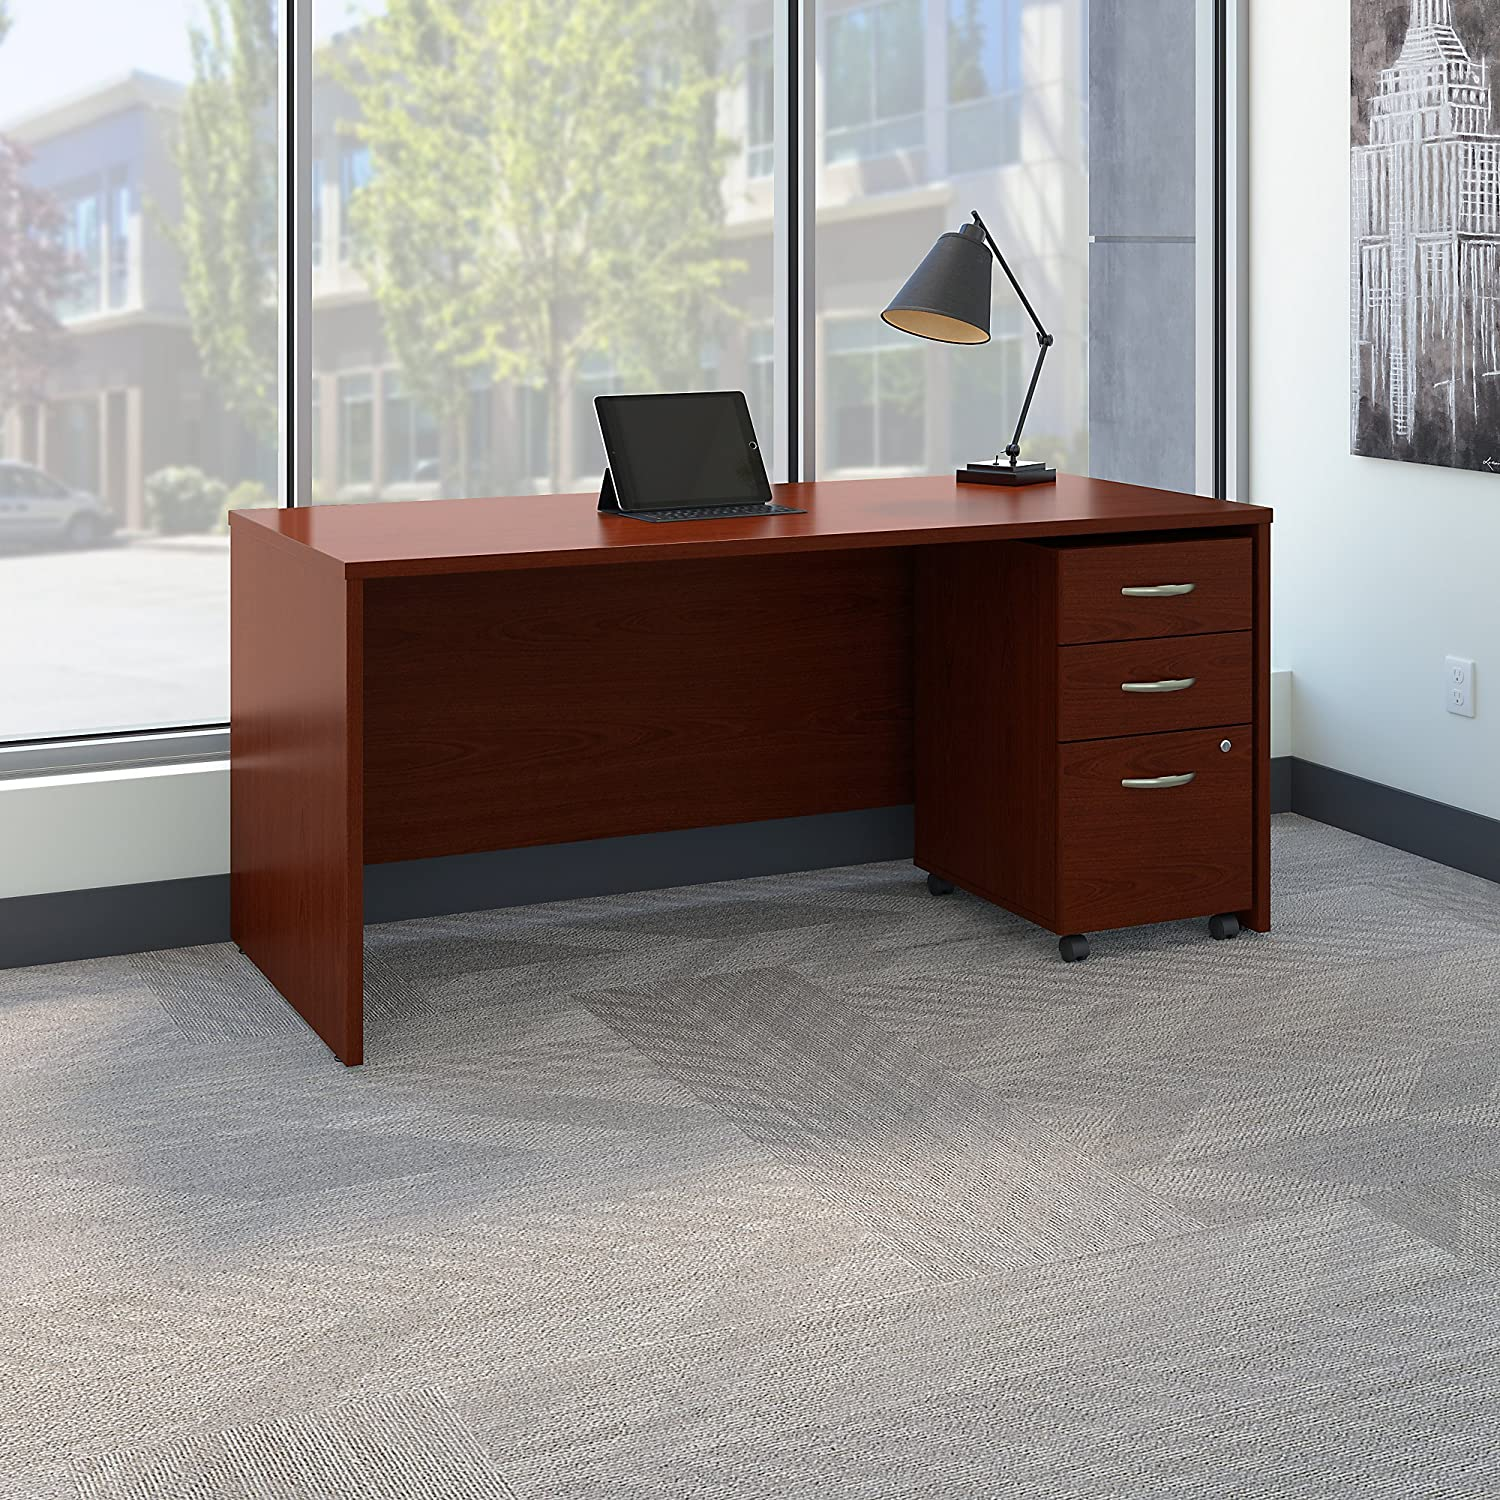 Amazon.com: Series C 66W X 30D Office Desk With Mobile File Cabinet In  Mahogany: Kitchen U0026 Dining